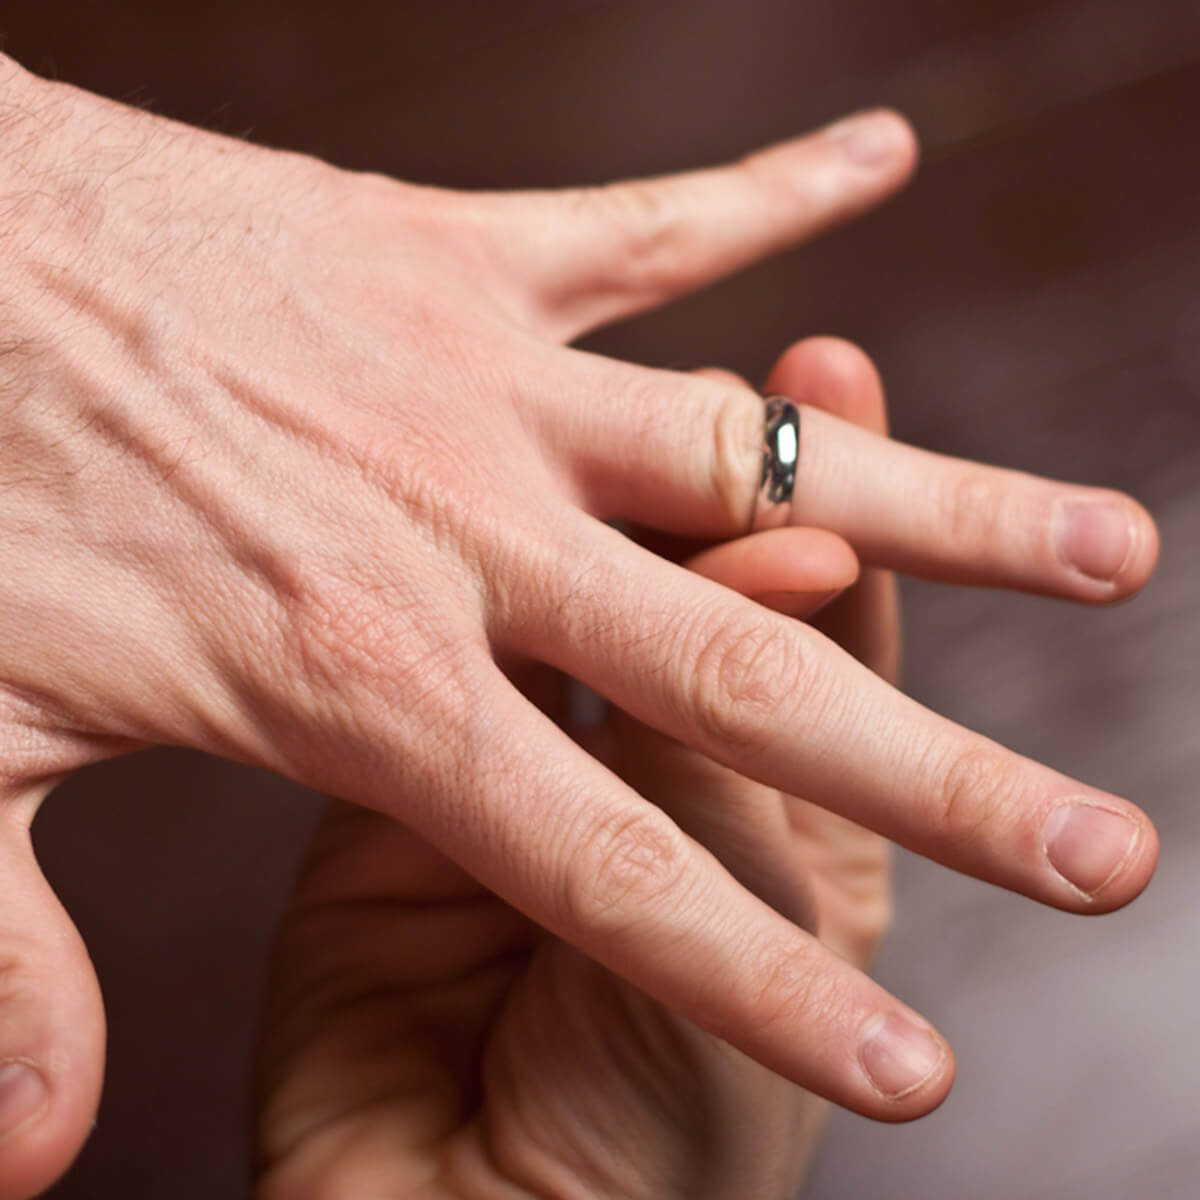 Wedding ring jewelry removal WD-40